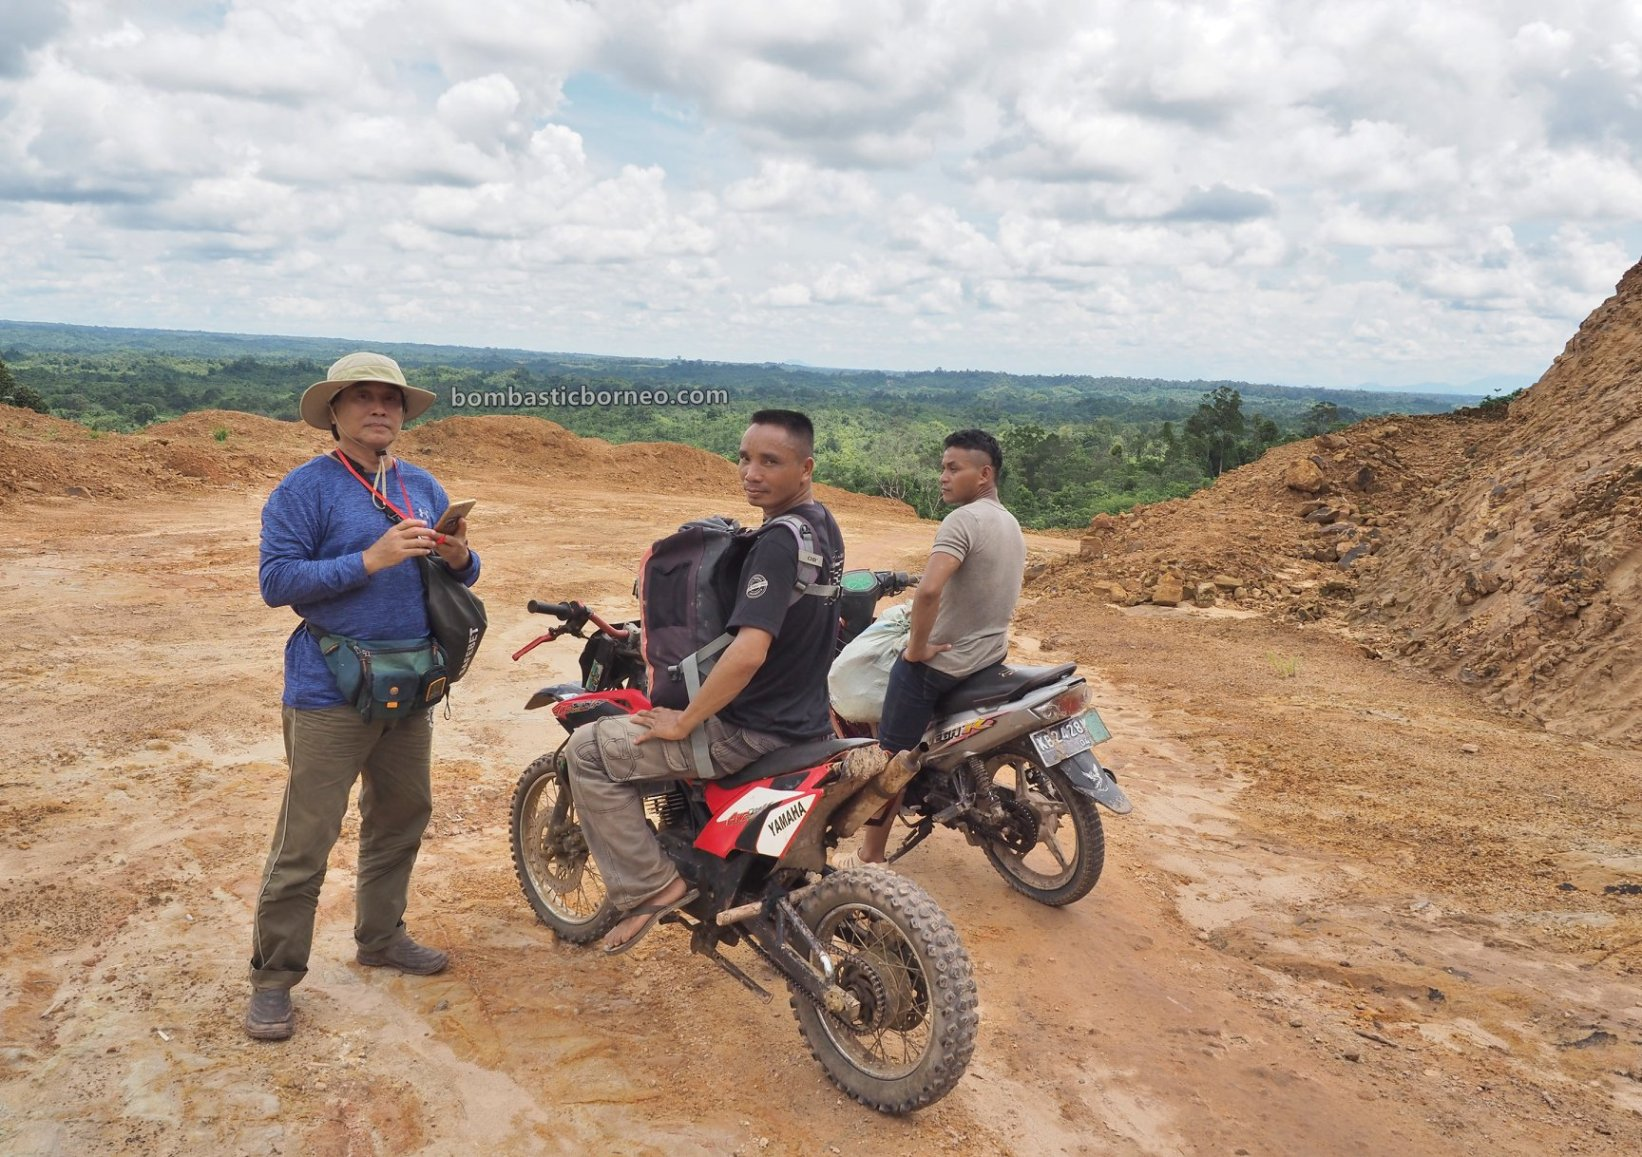 Desa Tamong, motorbike ride, Traditional, highland, village, exploration, Siding, native, Dayak Bidayuh, Tourism, travel guide, Trans Border, Borneo, 探索婆罗洲游踪, 印尼西加里曼丹, 孟加映达雅部落